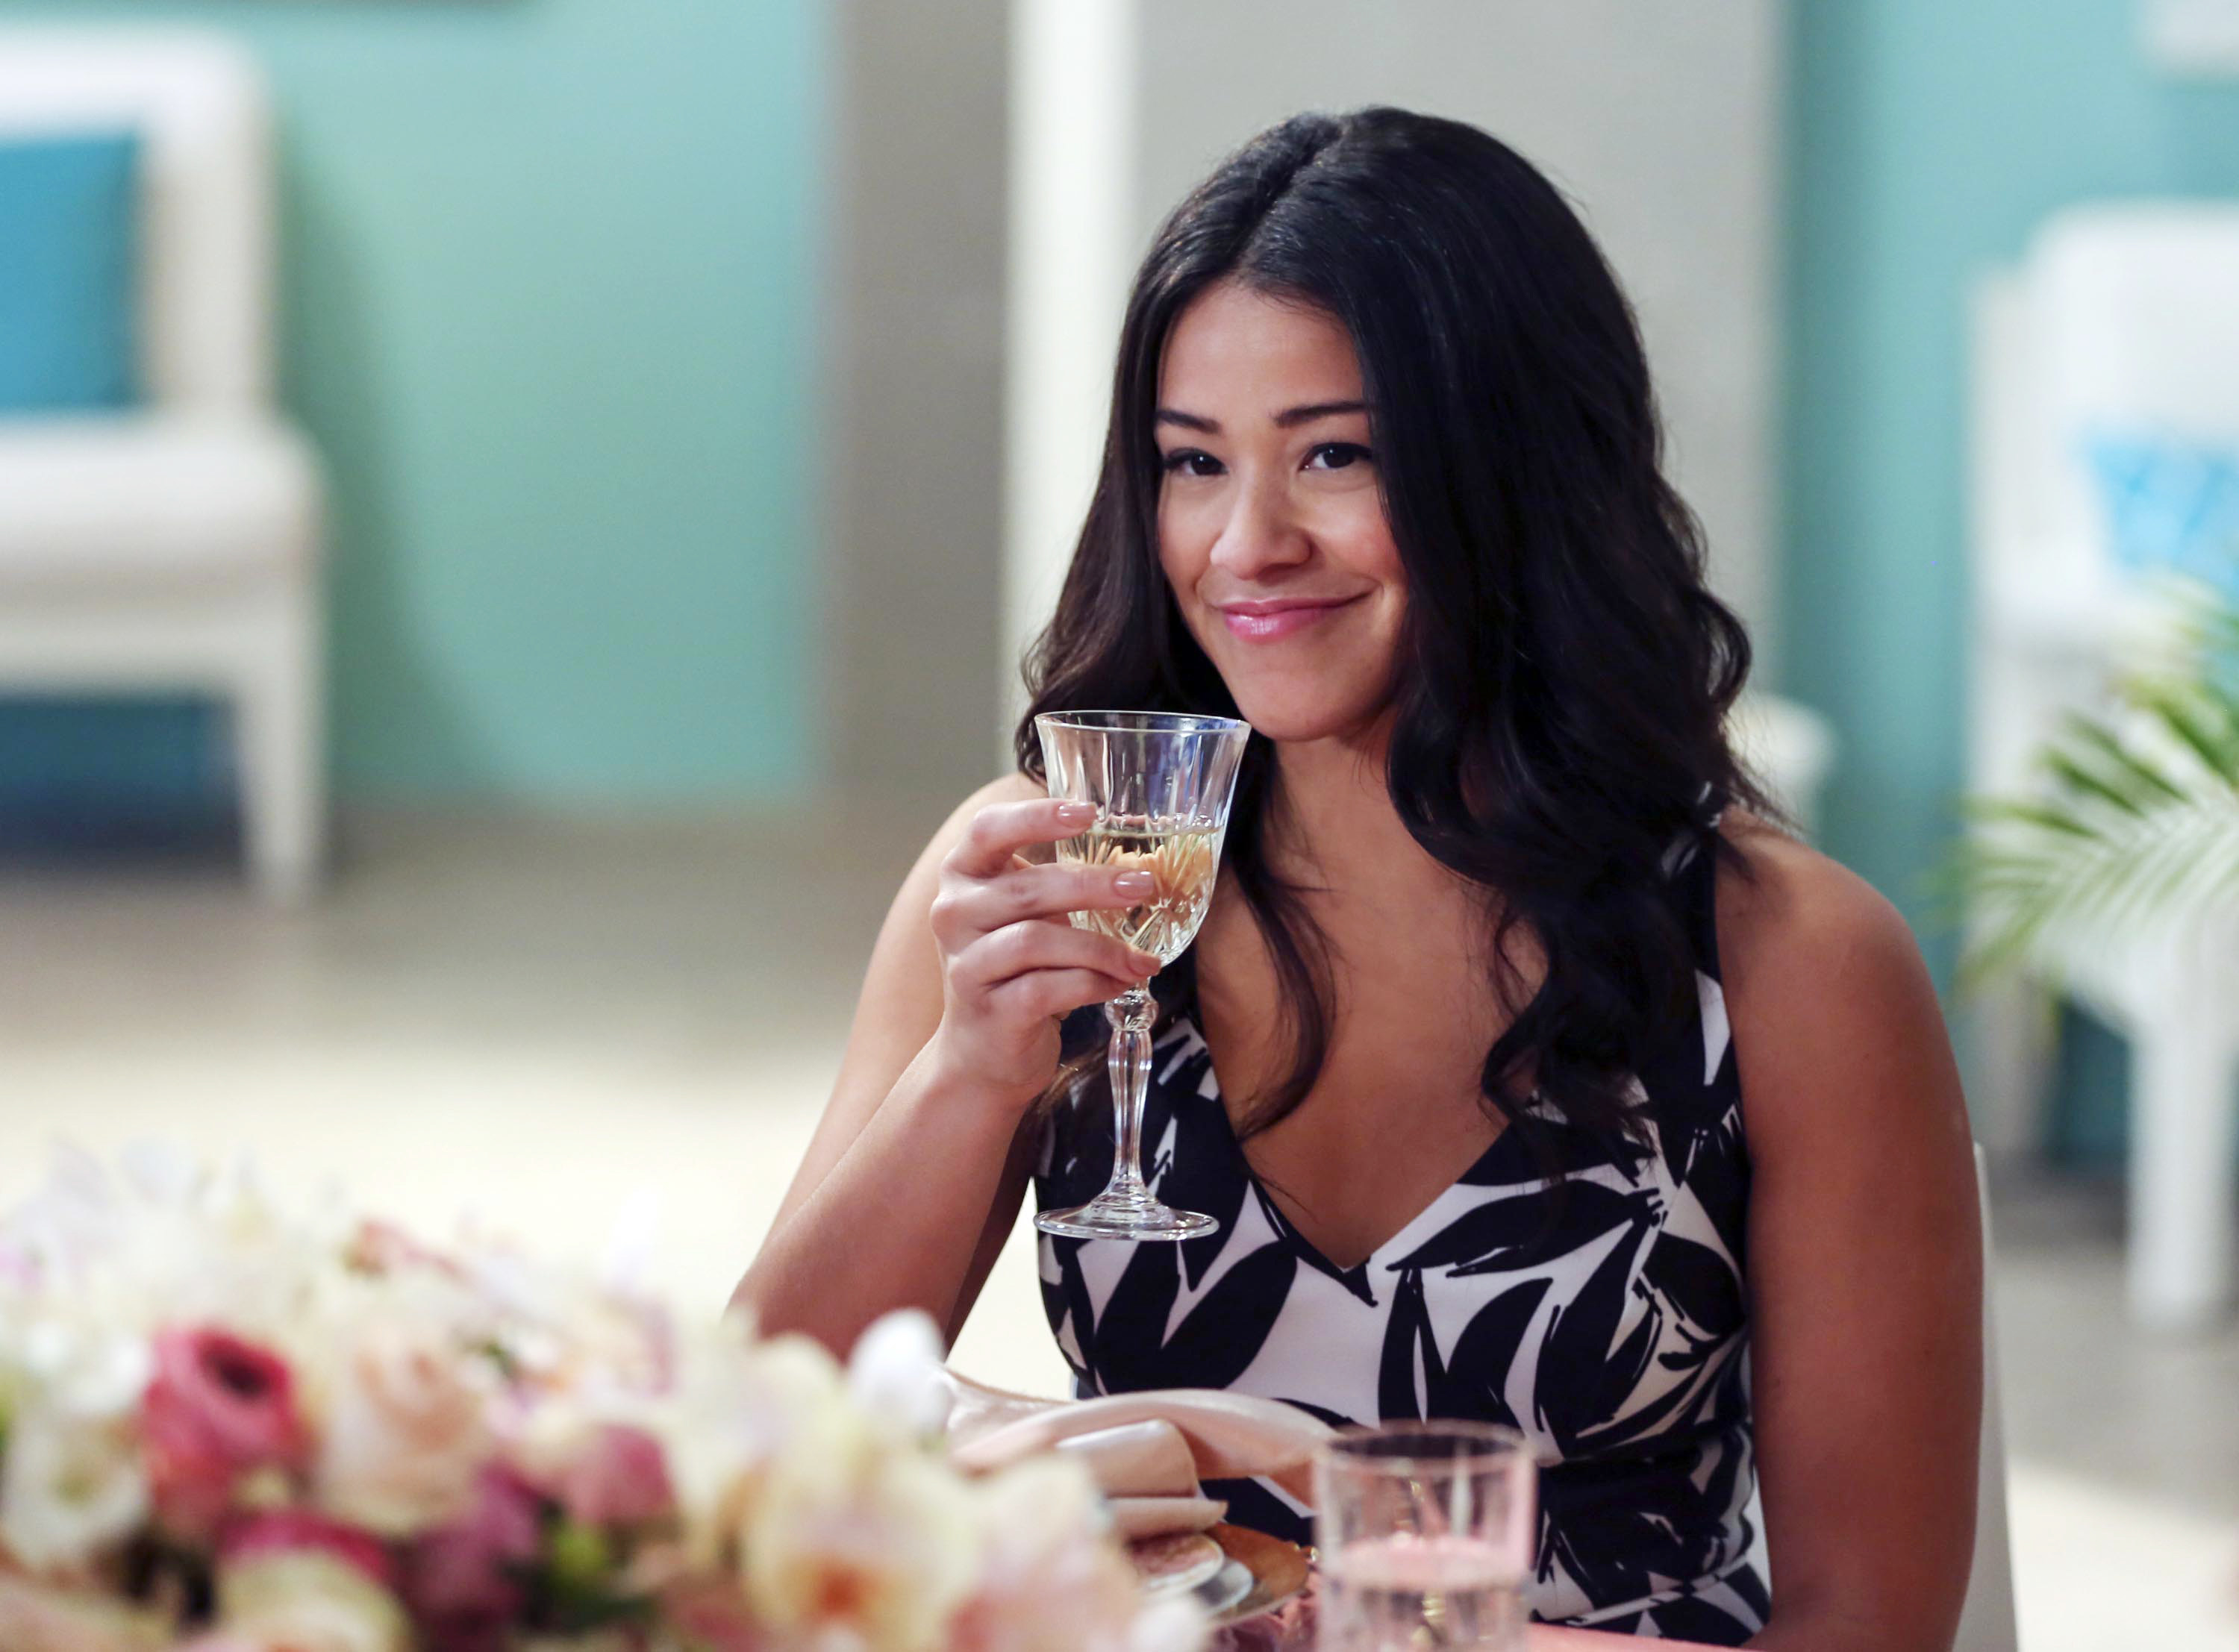 Jane in a dress and holding a glass up